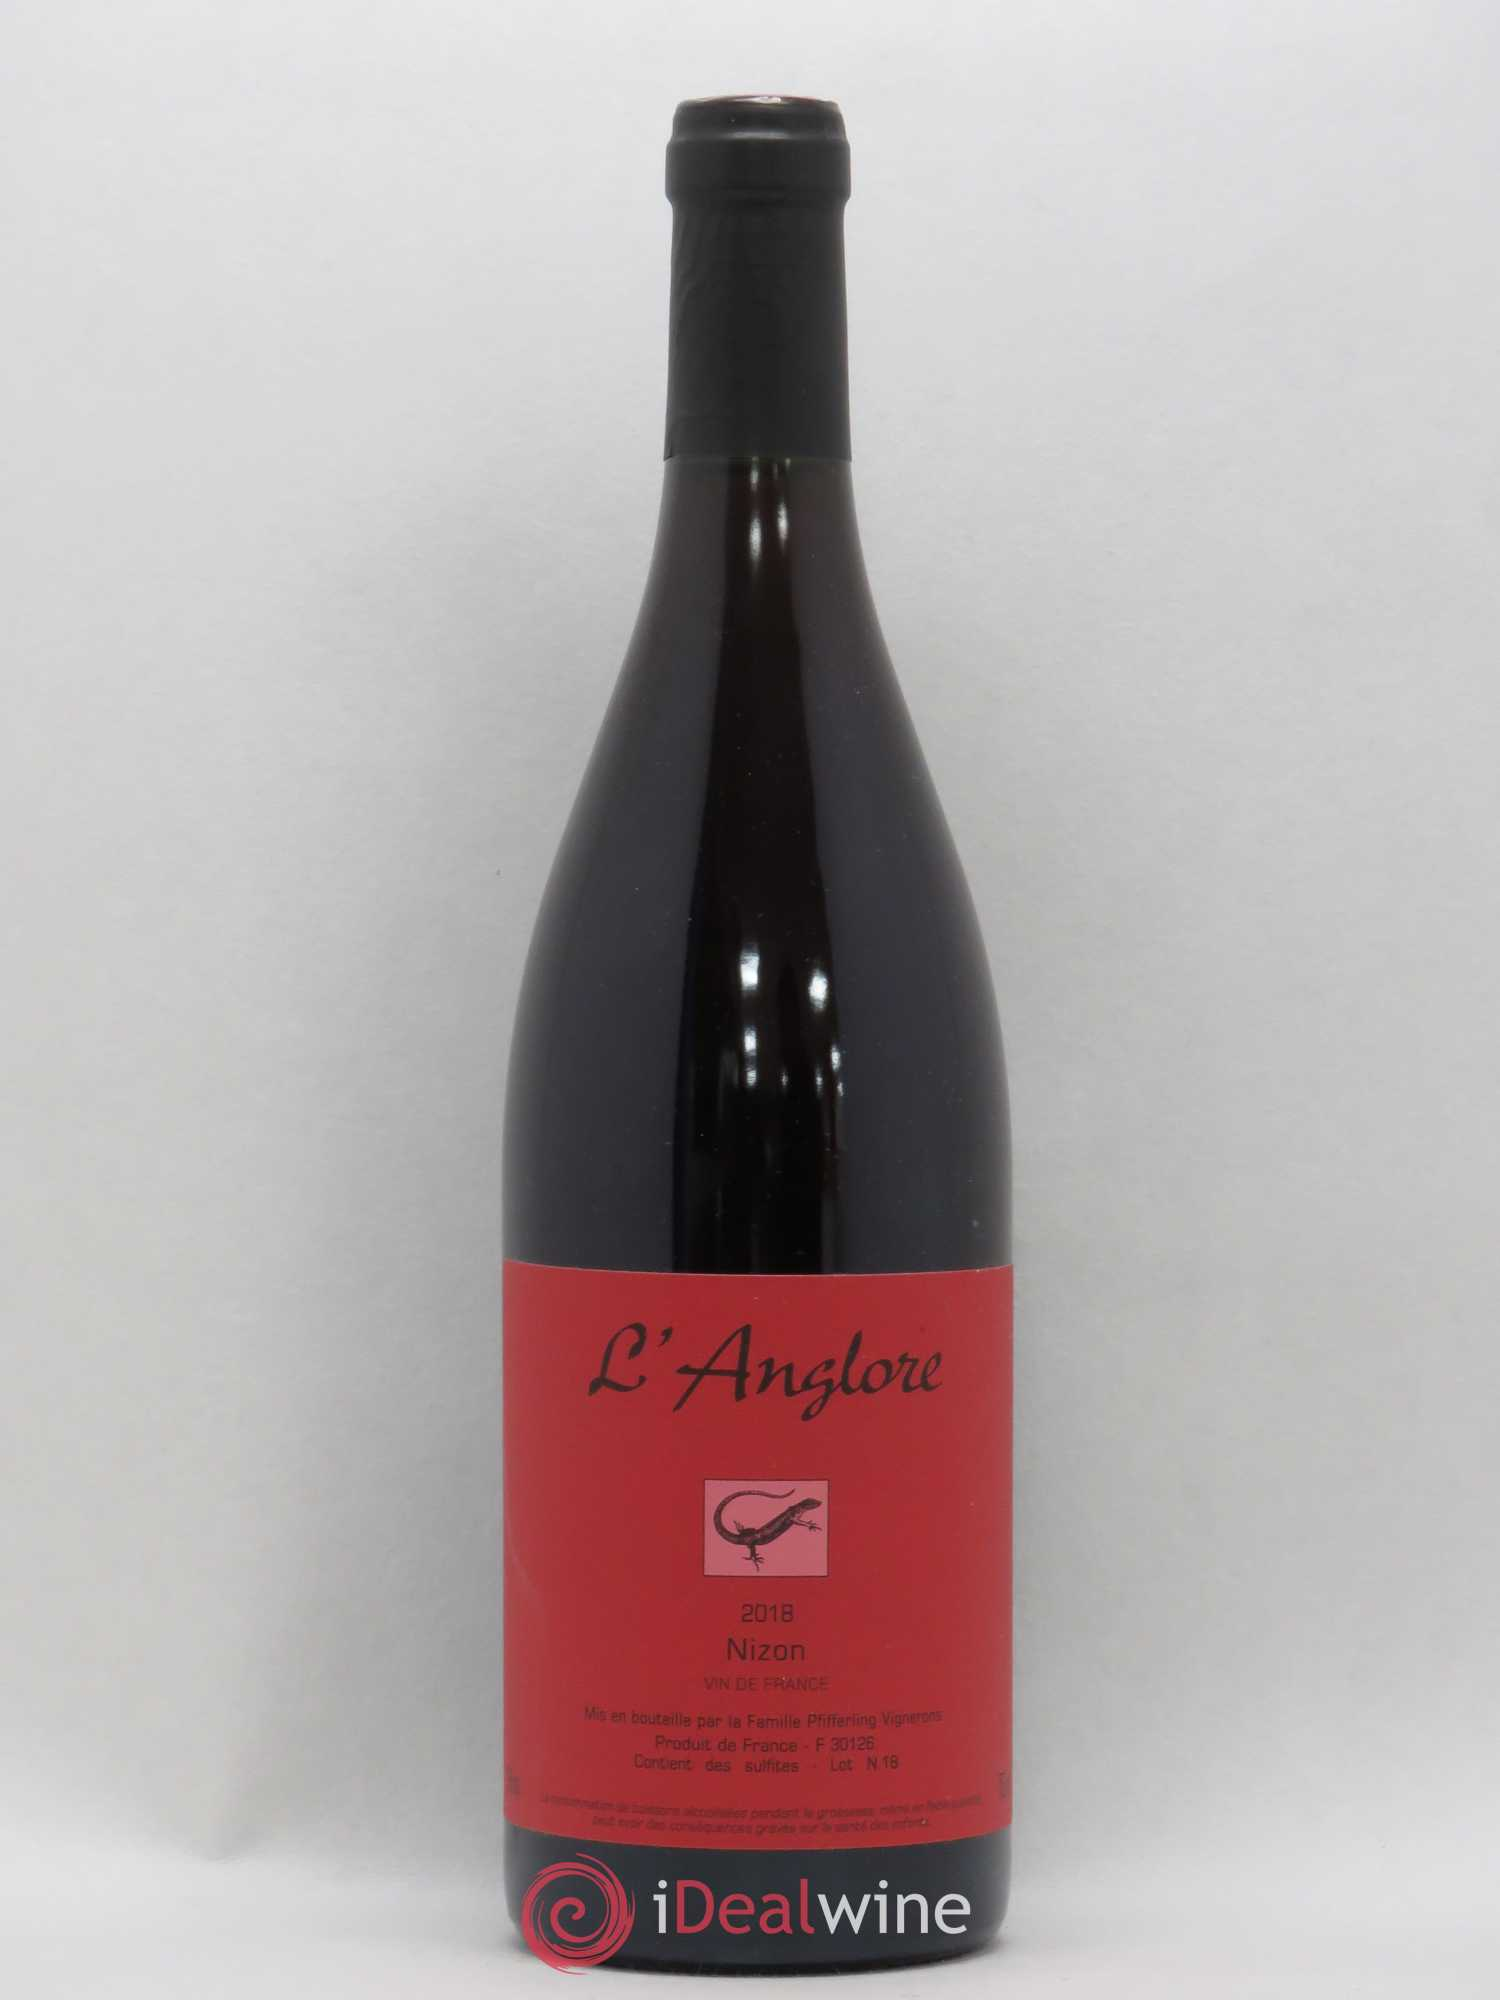 Vin de France Nizon L'Anglore  2018 - Lot of 1 Bottle